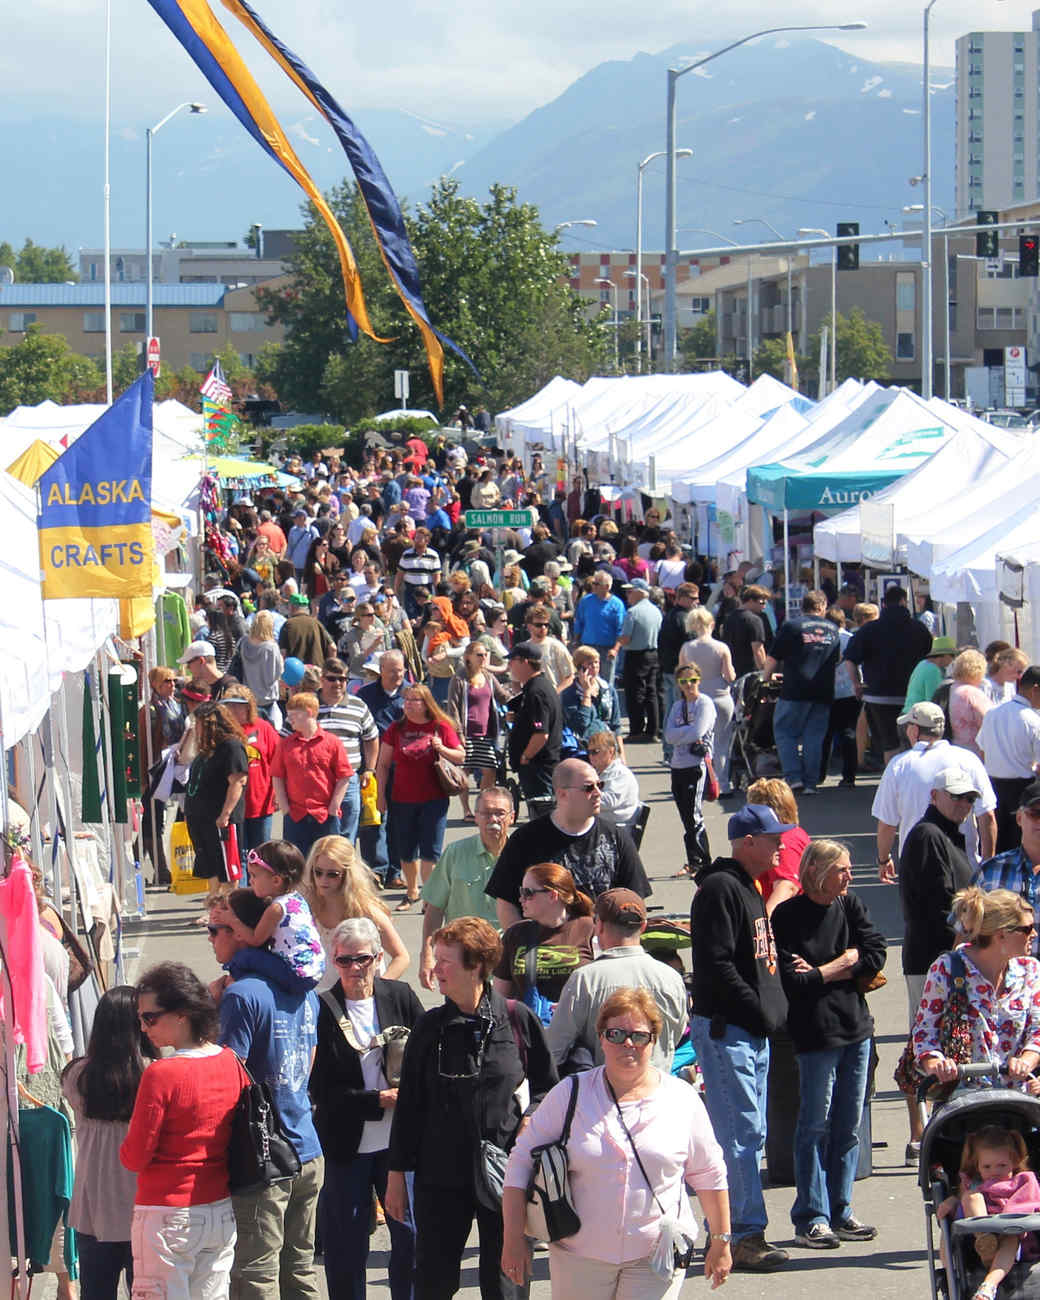 anchorage-market-and-festival.jpg